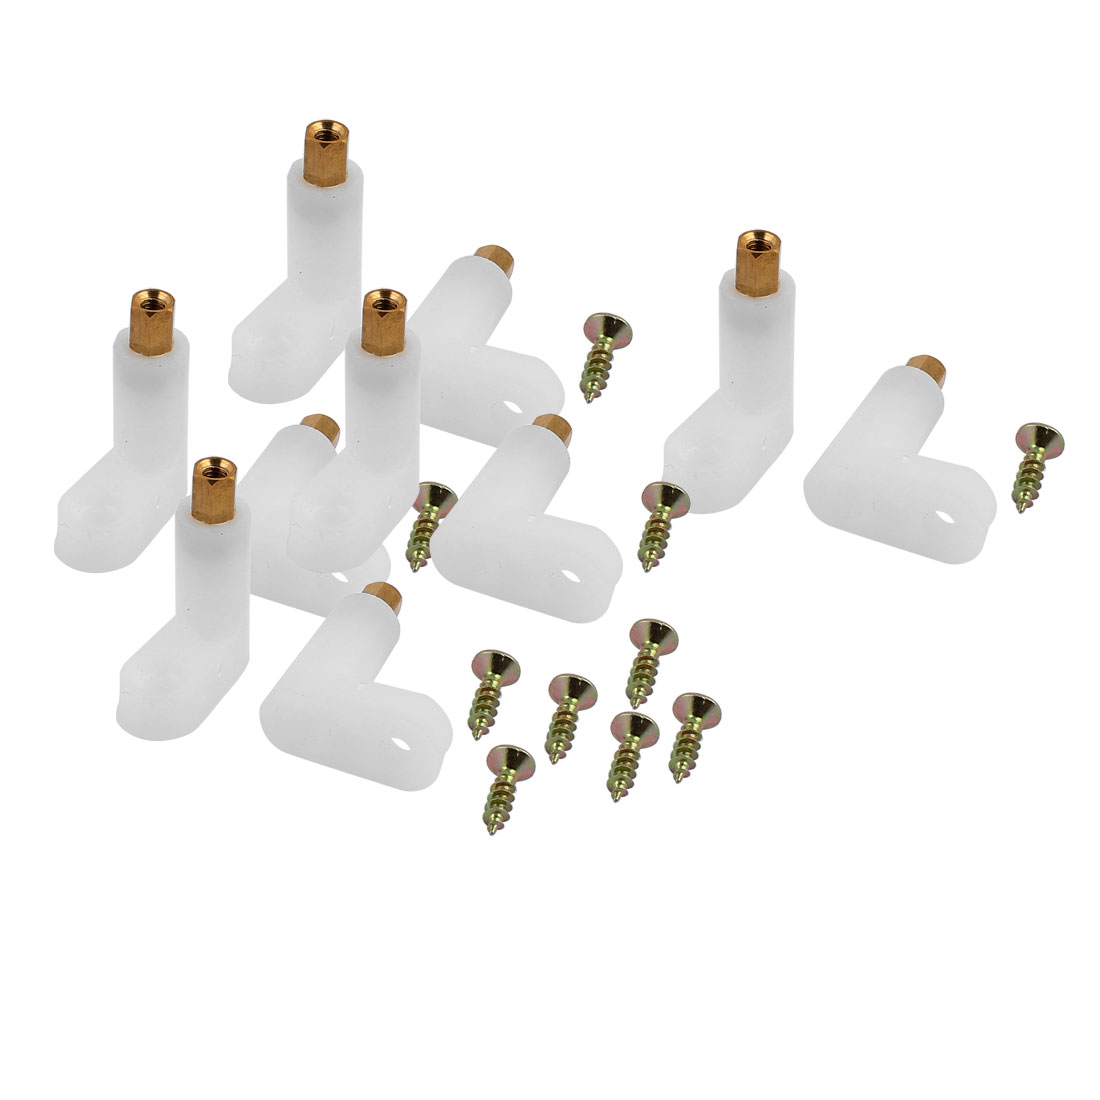 10 Pcs L Shape Insulated PCB Spacer 25mm Supporting Height w Self-Tapping Screw